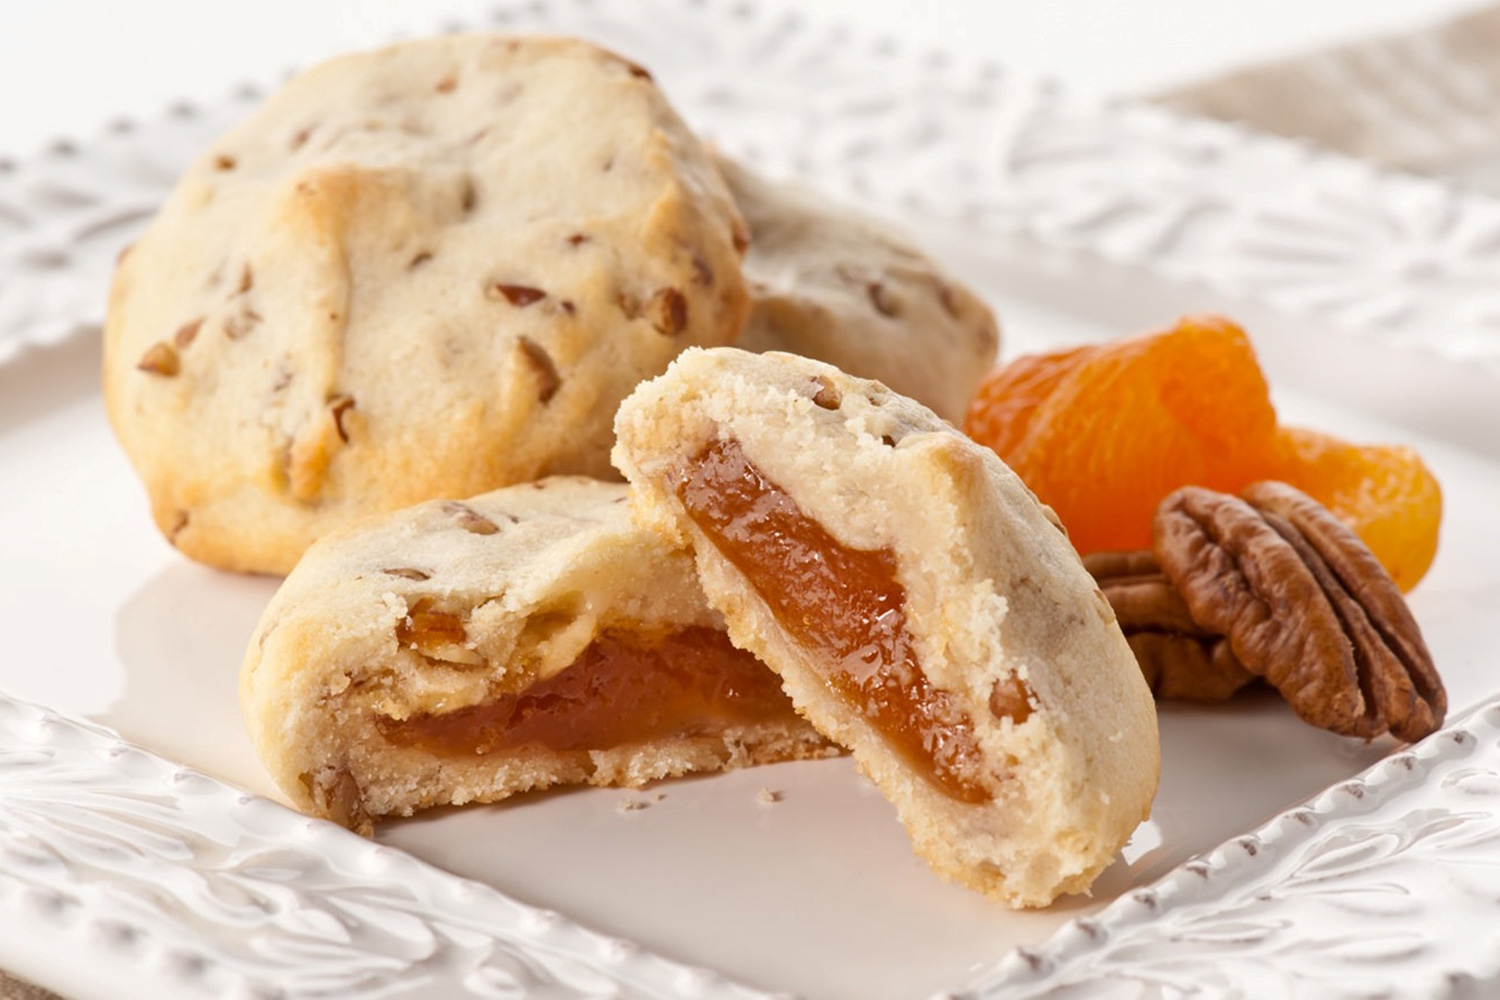 Apricot Pecan - One of our favorites, All Natural Apricot filling surrounded by the most flavorful, light pecan and cream cookie. The only way to describe it is Oh So Good!